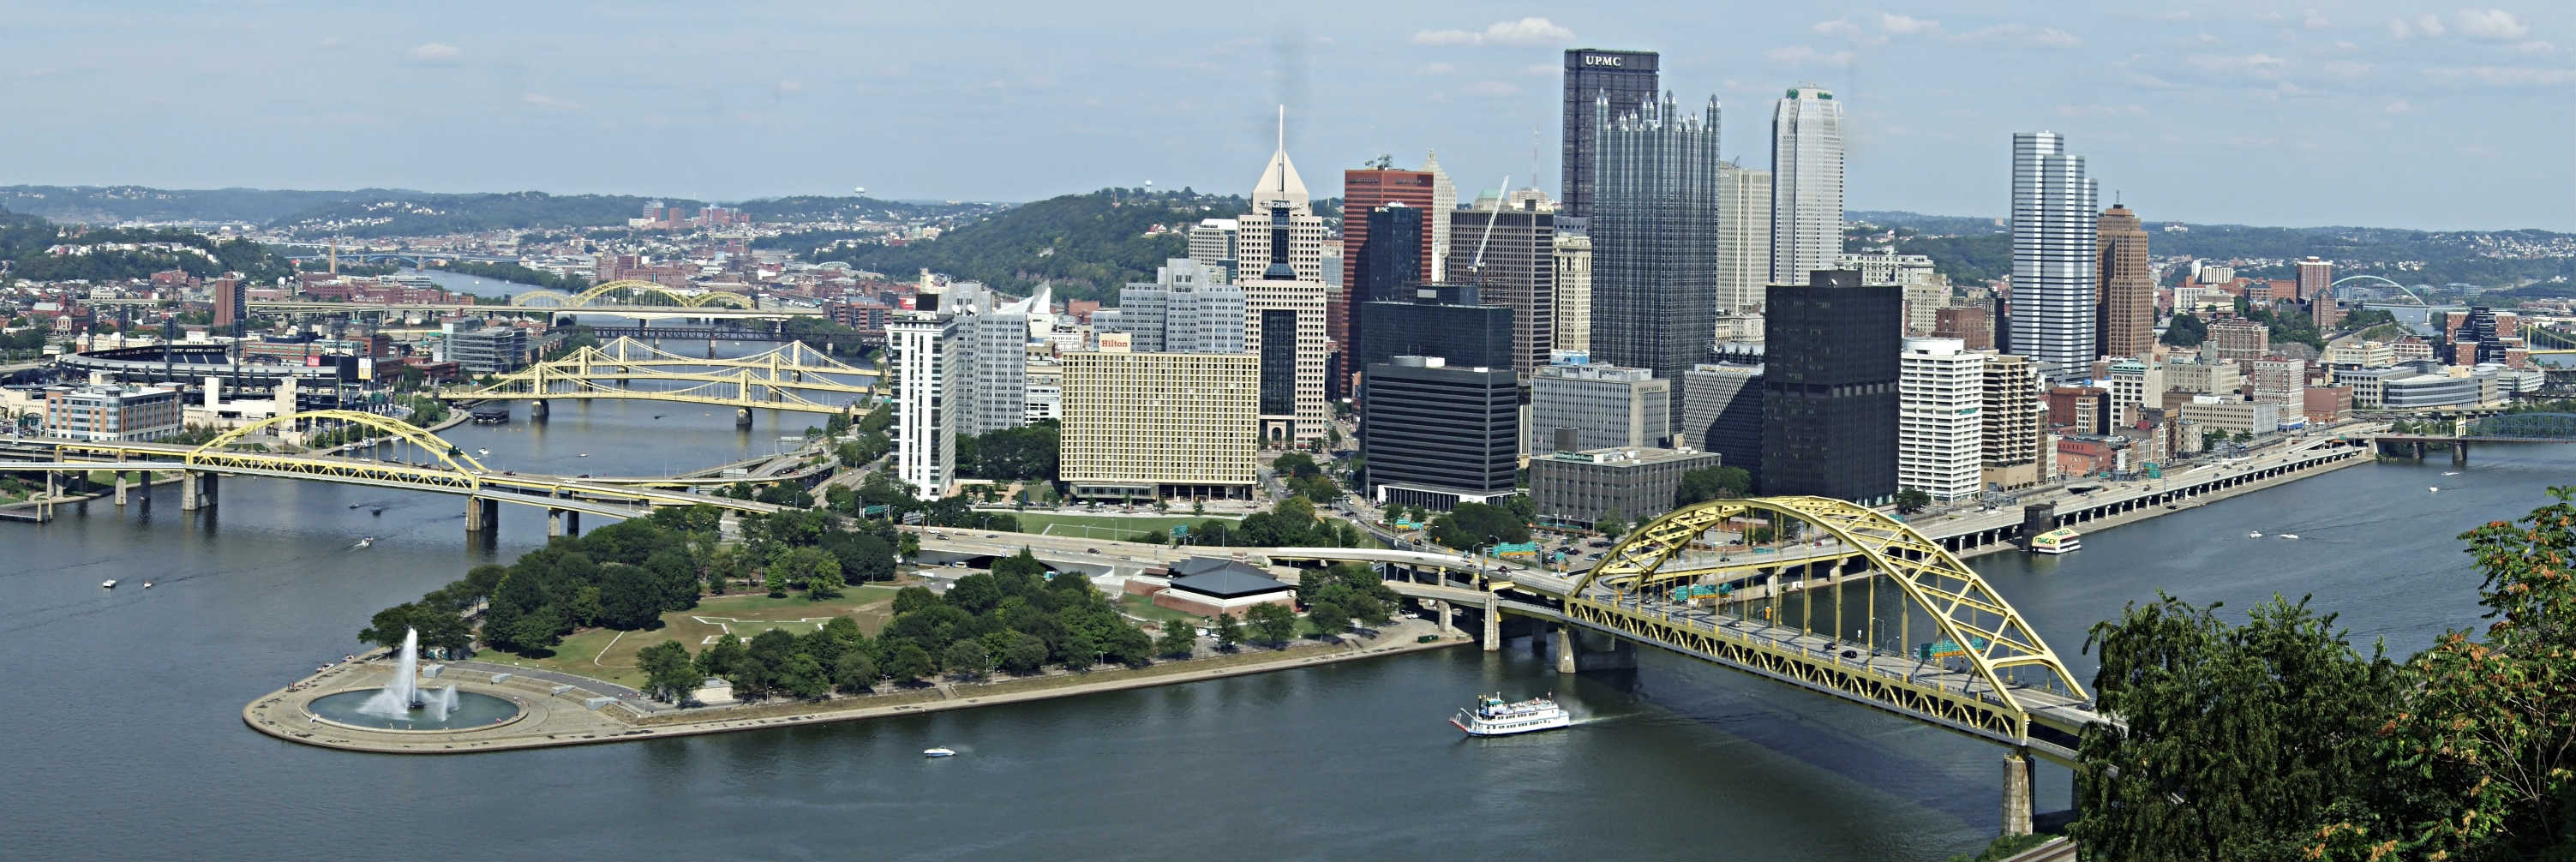 view of pittsburgh skyline